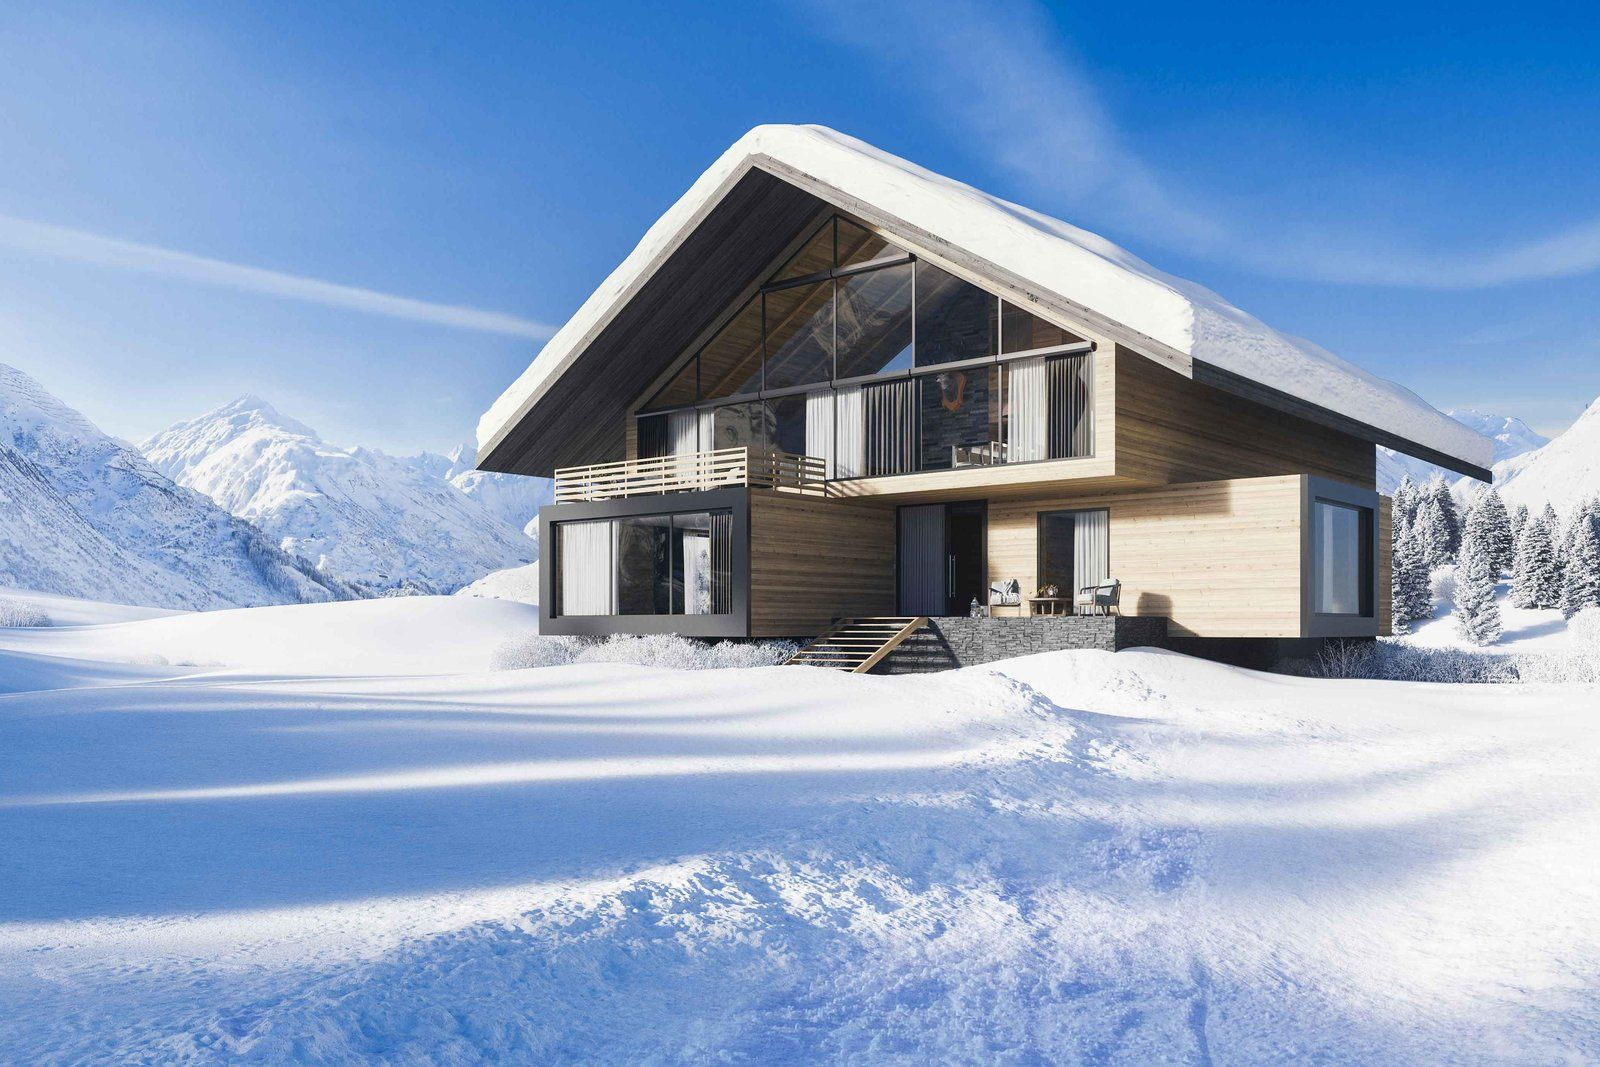 Here's How You Can Own A Carbon-Neutral, Luxury Holiday Home In The Swiss Alps